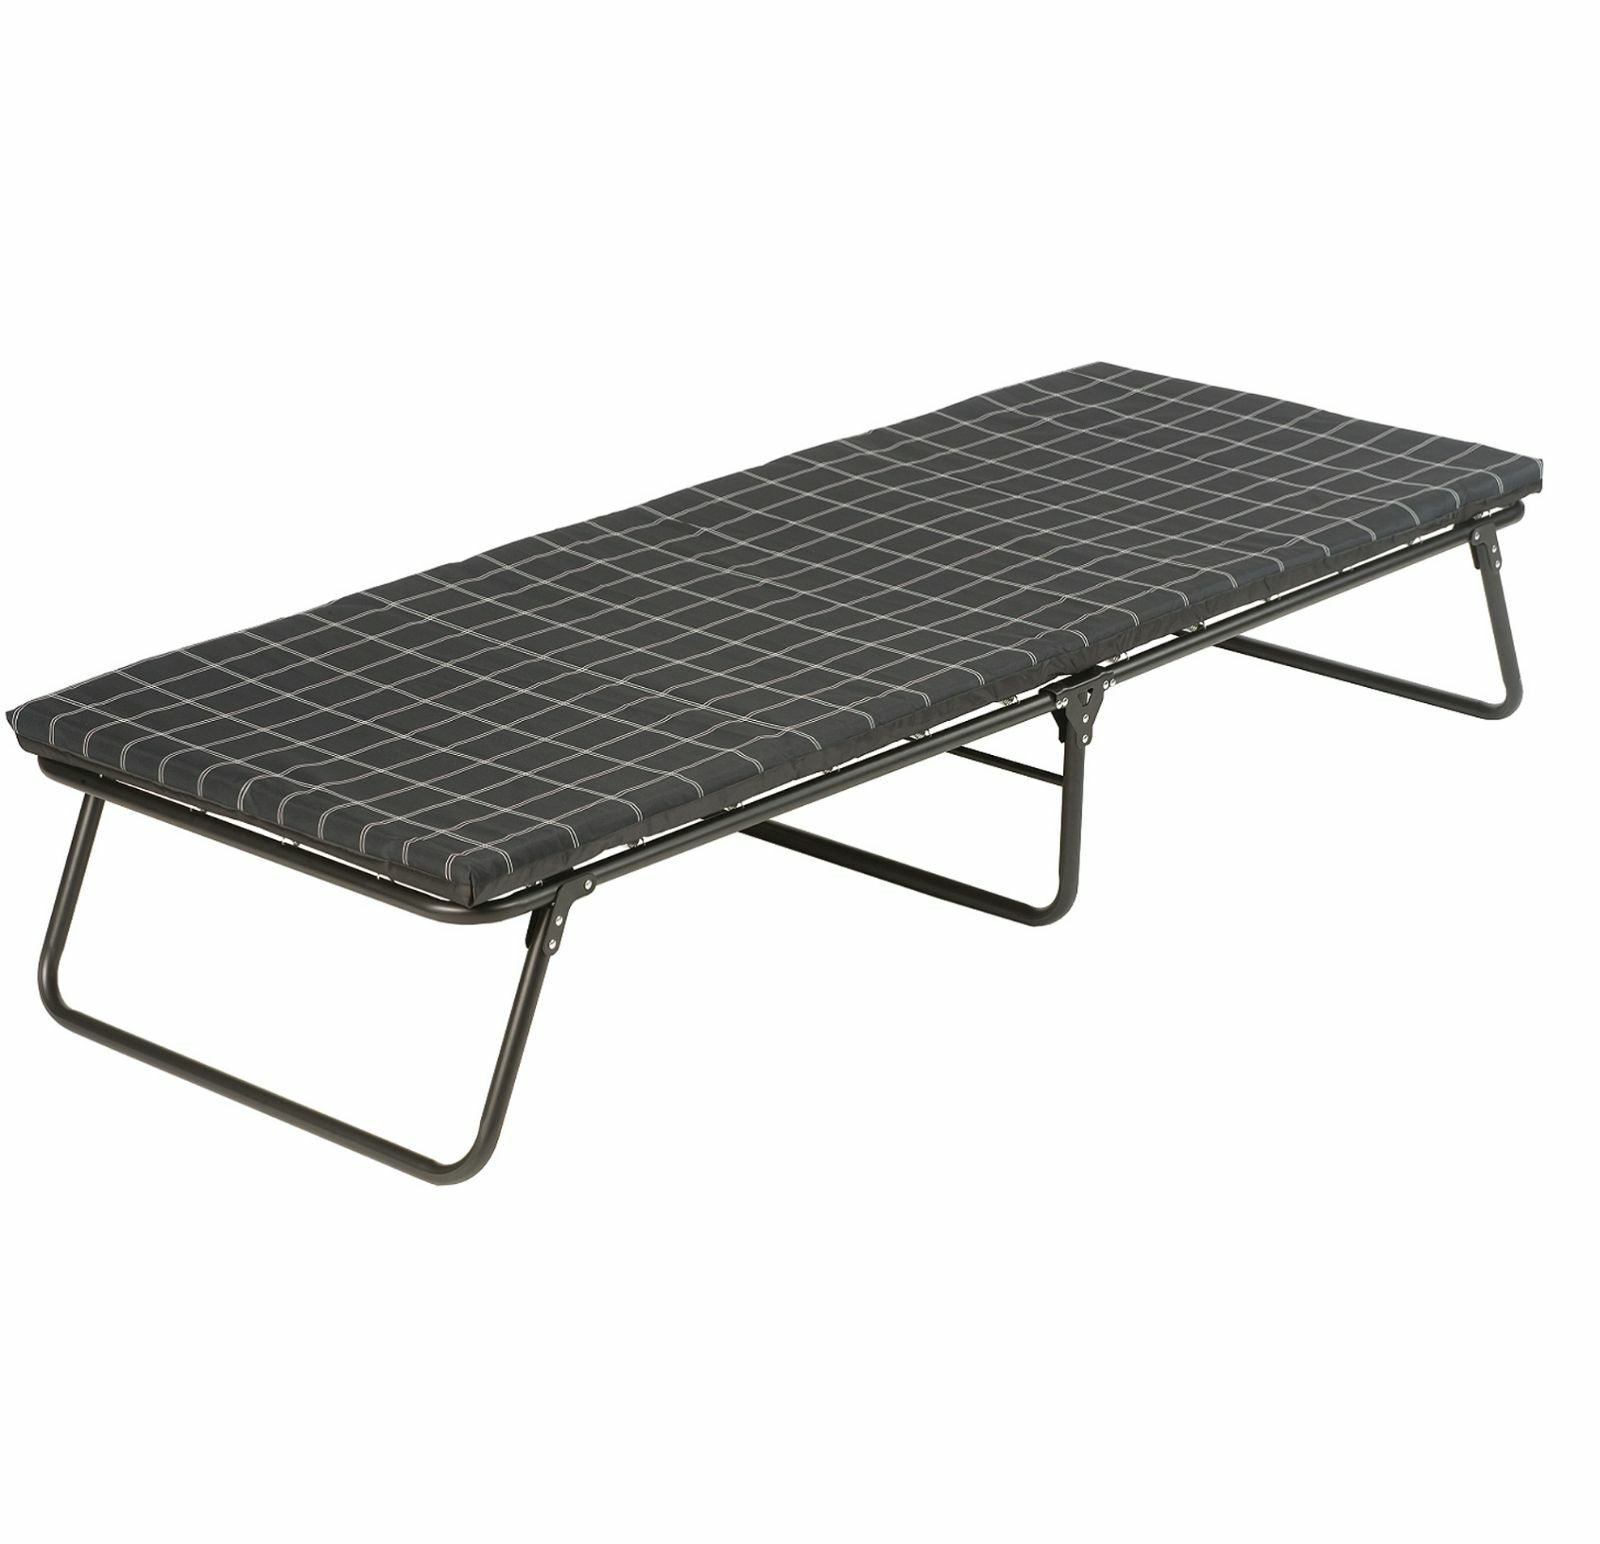 Coleman Portable Comfortsmart  Deluxe Sleeping Cot Outdoor Folding Camping Bed  high quality genuine